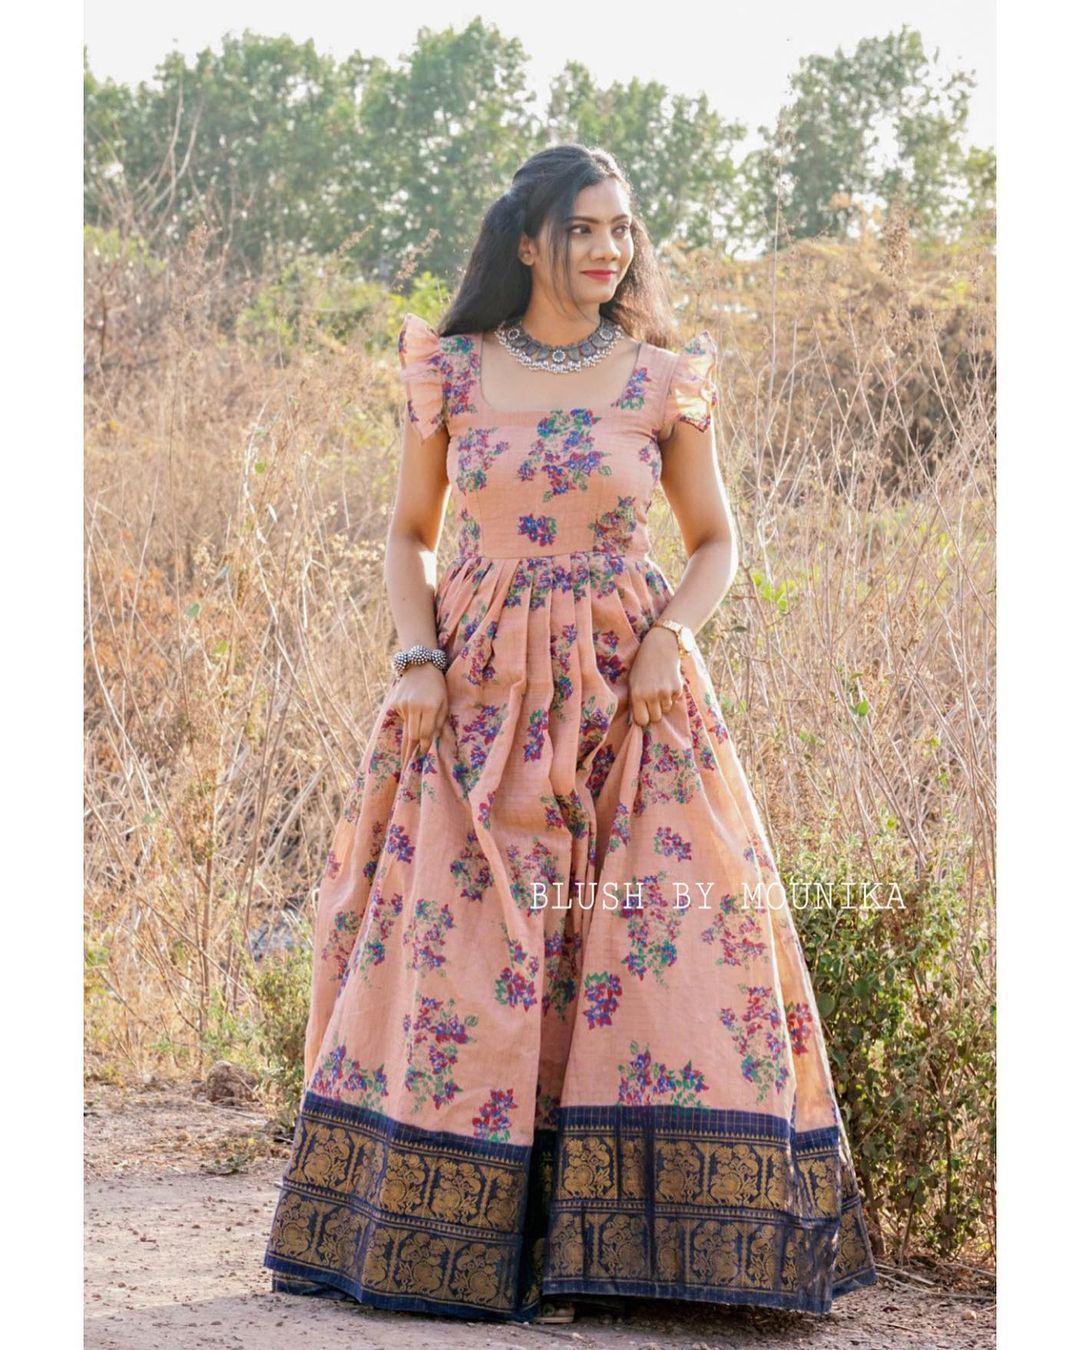 Champa . Price : ₹4200/- Handloom Cotton Maxi Dress with Floral Print Zari checks and Zari border. Sleeves can be customized. 2021-04-14